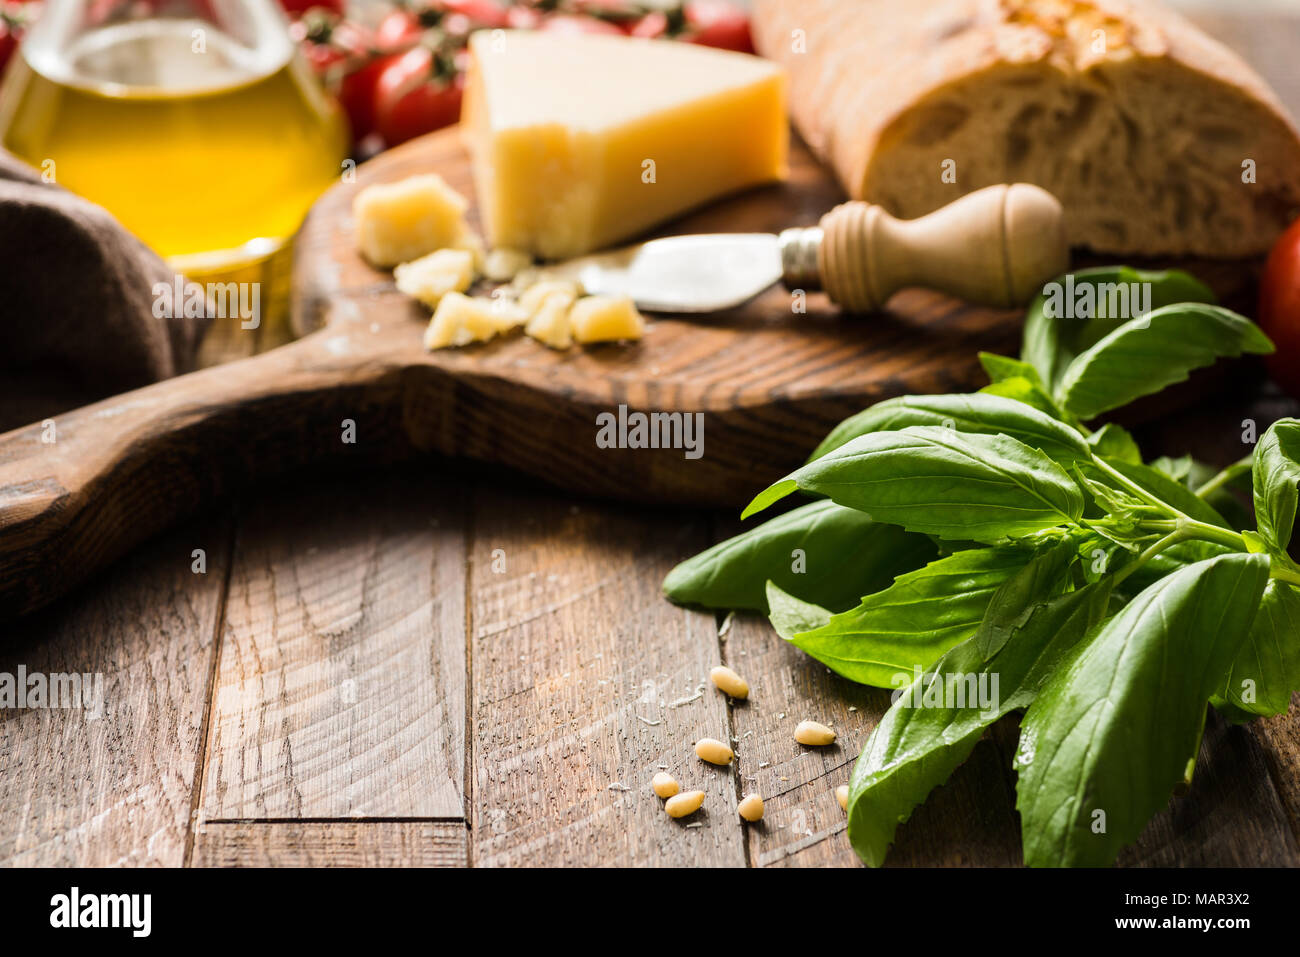 Italian food background with parmesan cheese, olive oil, ciabatta and basil leaves on rustic wood. Copy space for text, selective focus - Stock Image